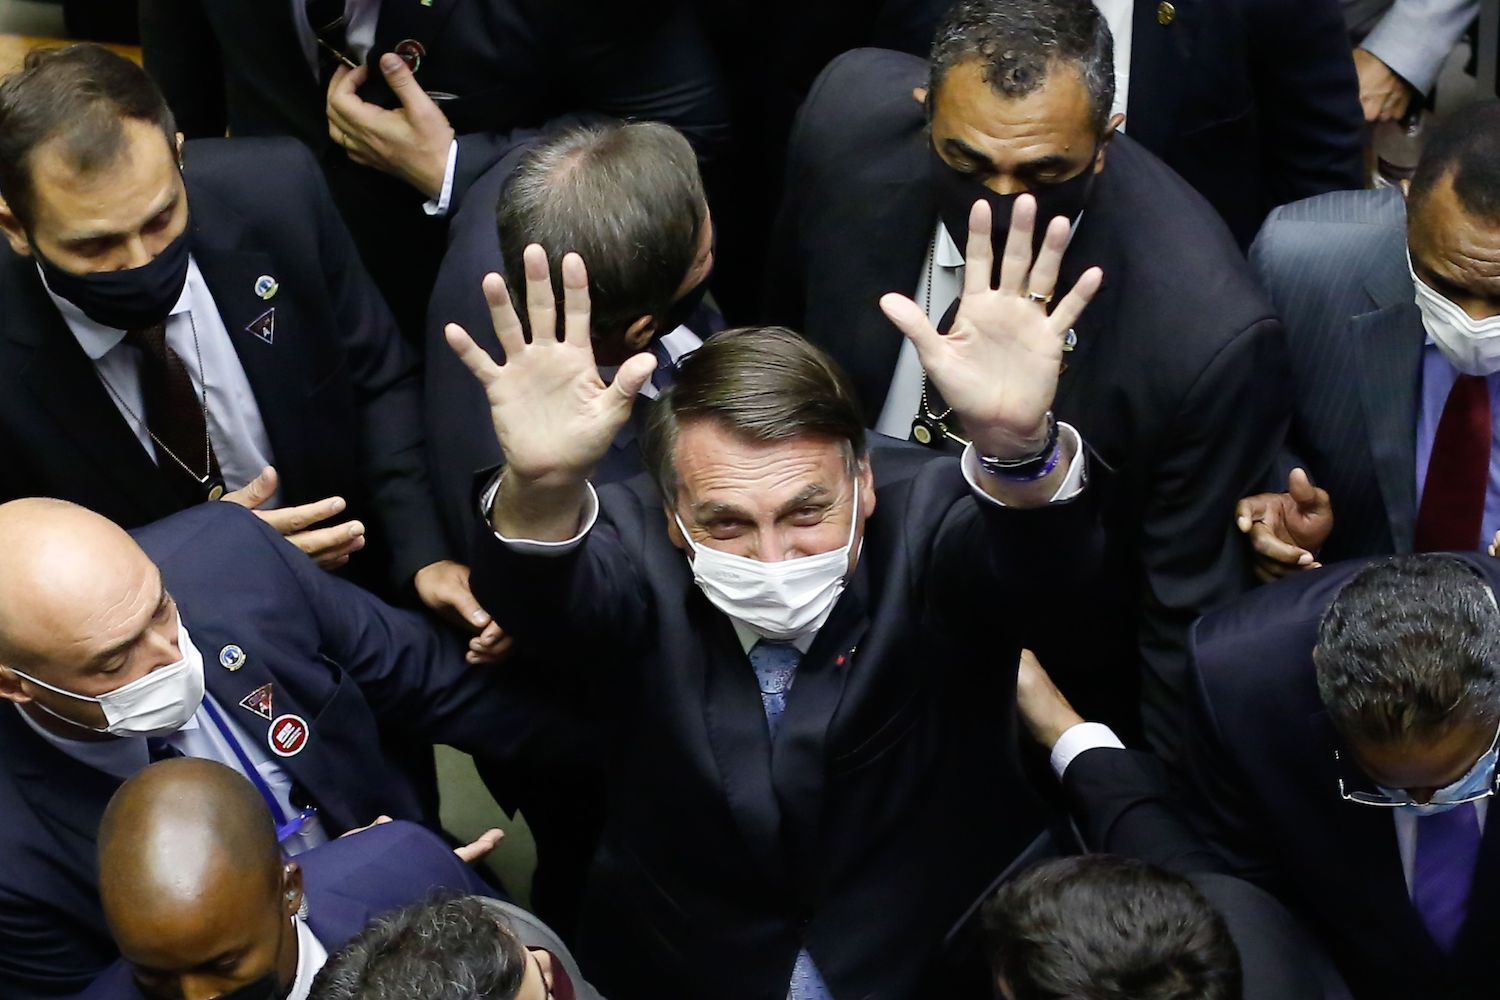 Brazilian President Jair Bolsonaro waves as he leaves the National Congress after a plenary session of the Chamber of Deputies, in Brasilia, on Feb. 3